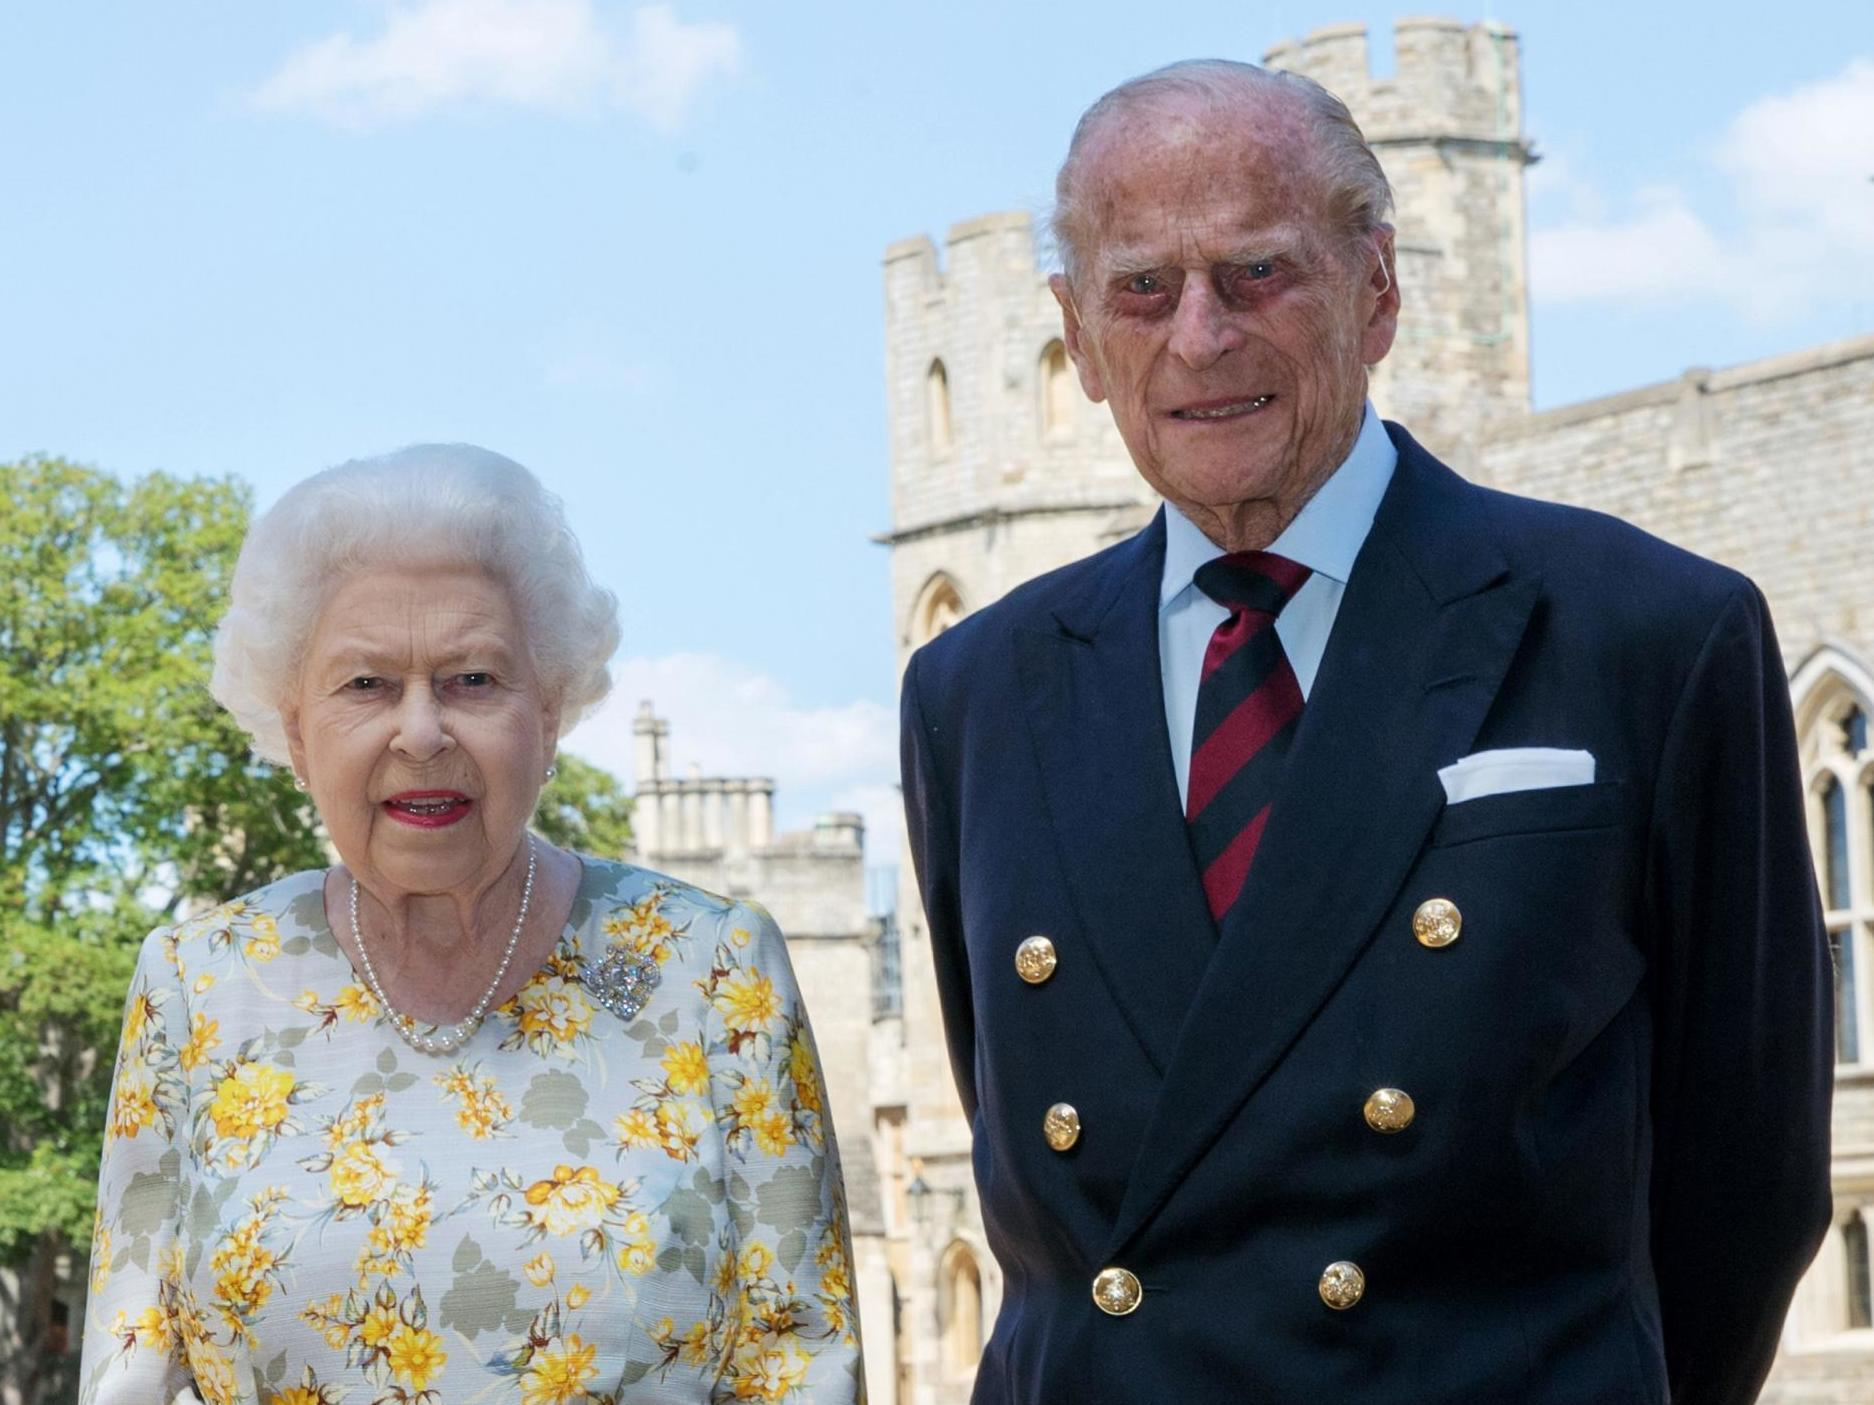 Queen Elizabeth Gifted Her Husband Prince Philip His Title